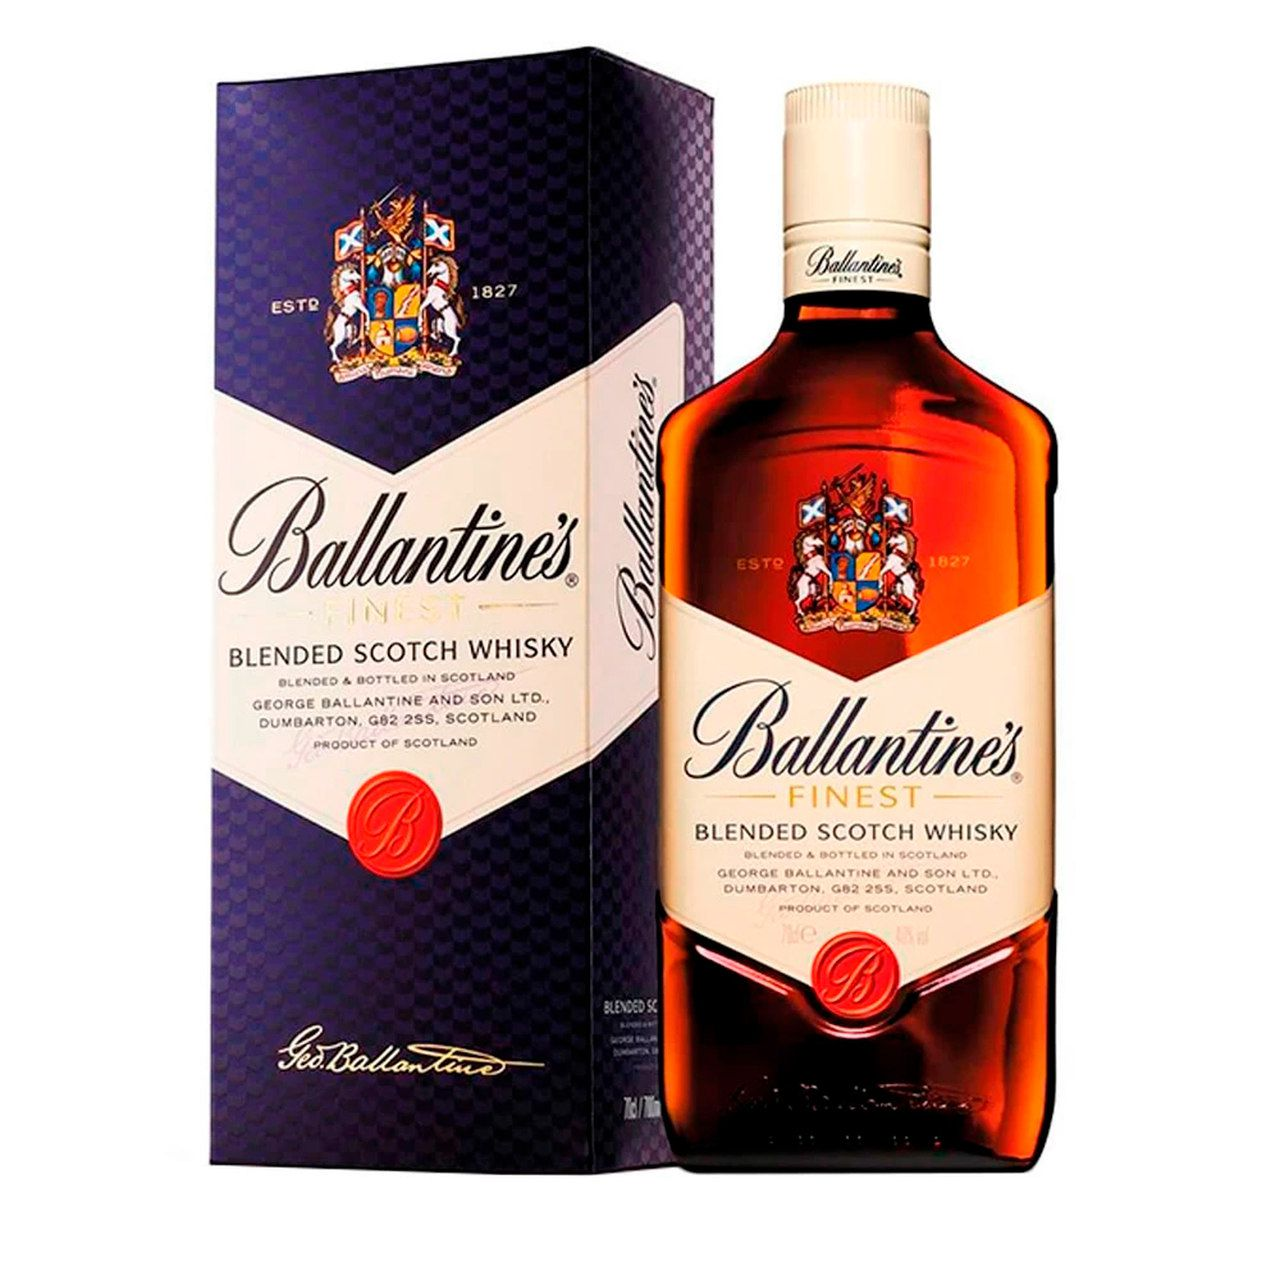 Whisky Ballantine's Finest 8 anos 750ml - Pernod Ricard